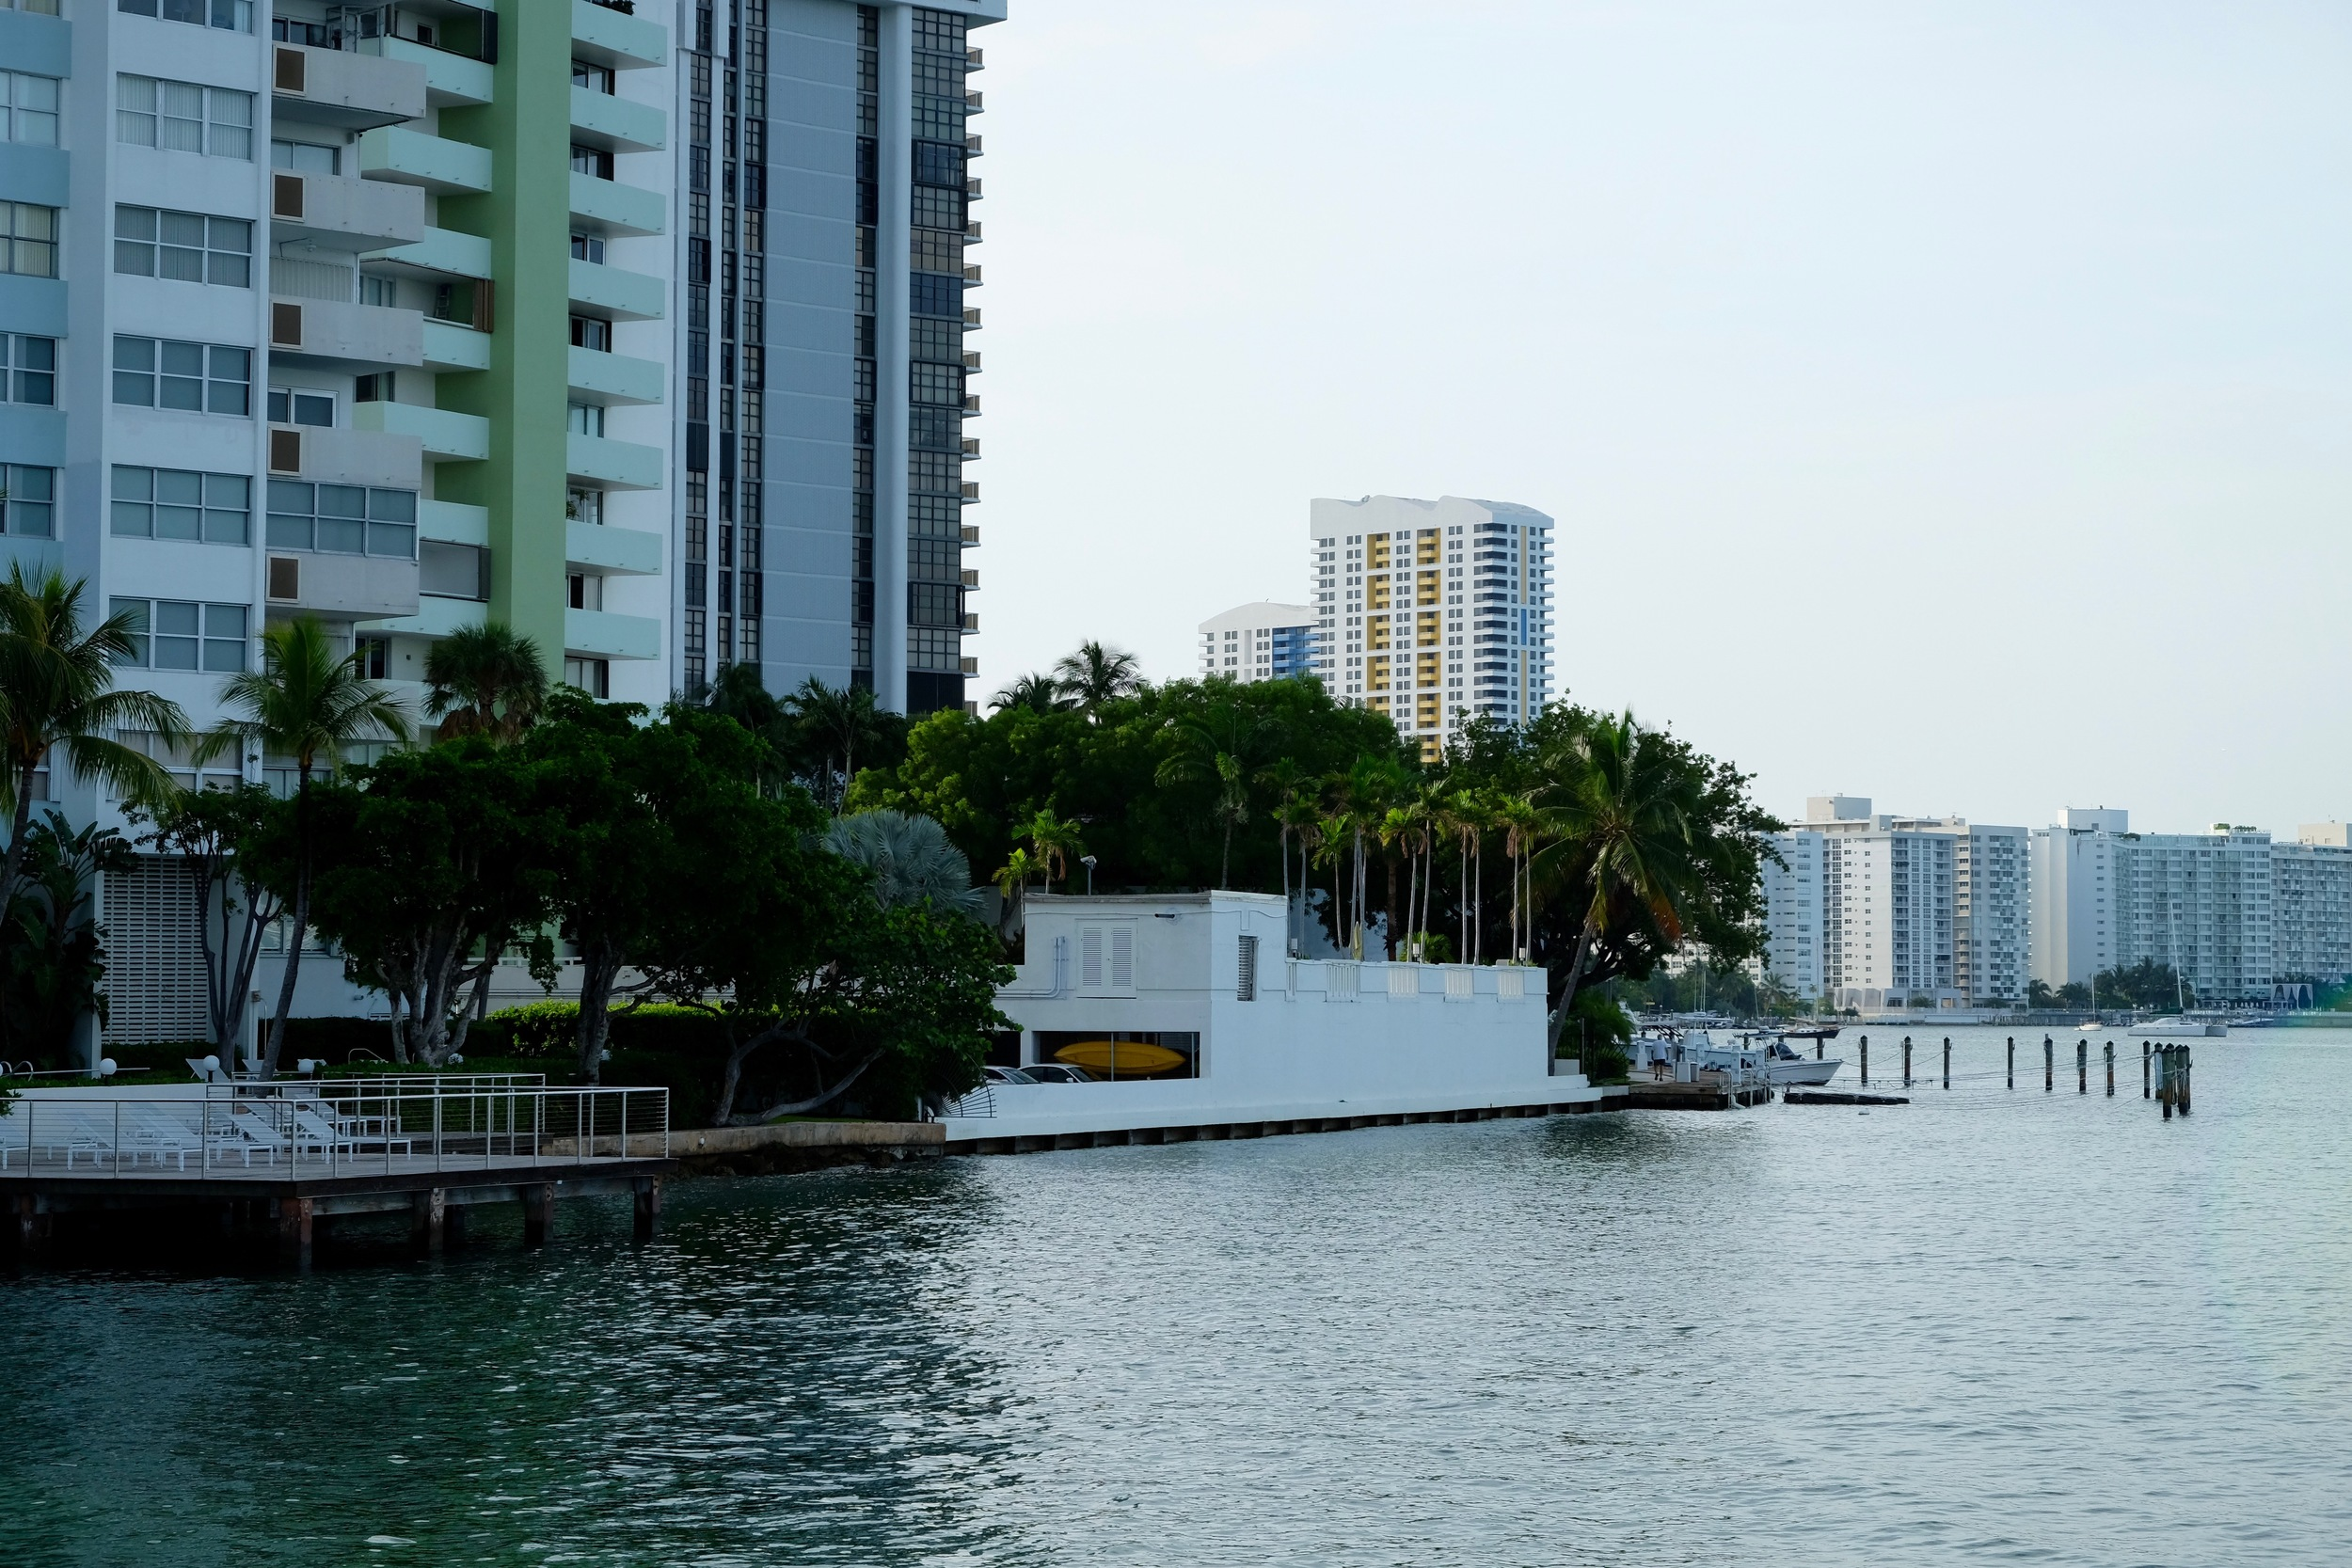 Venetian Islands at High Tide: Climate Impacts